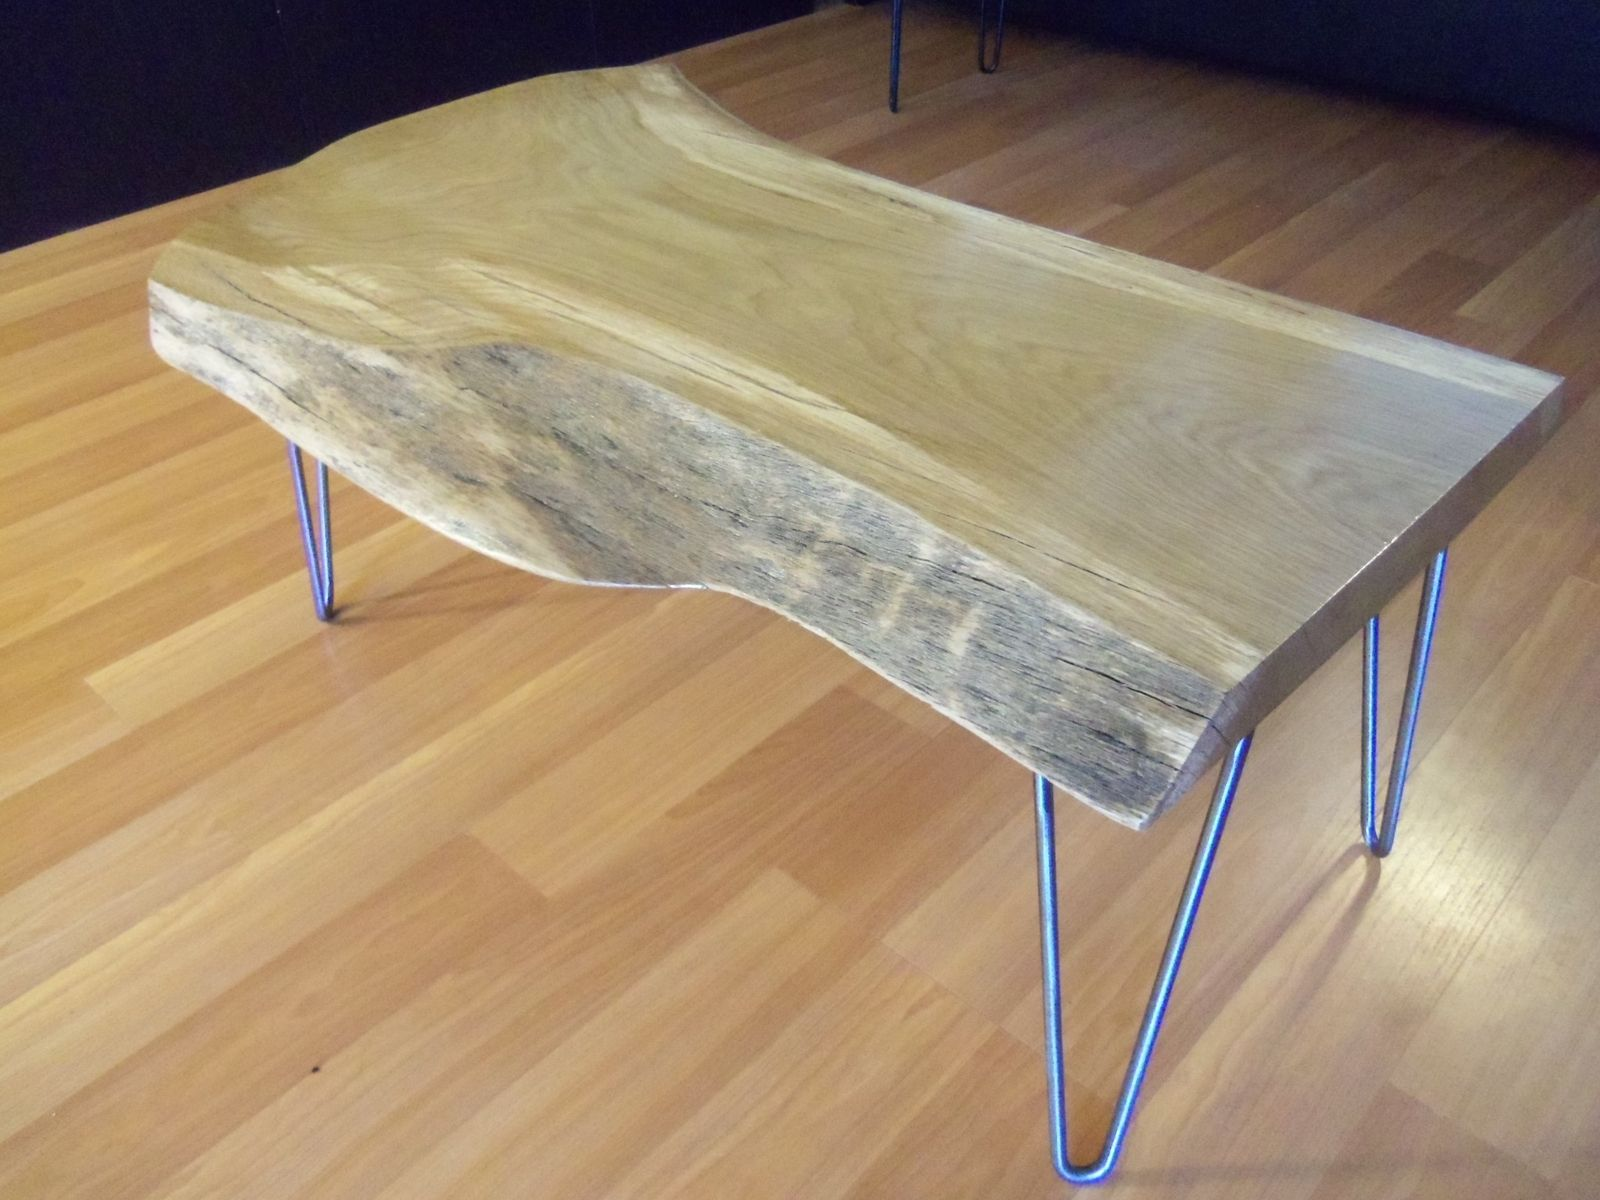 Custom Live Edge White Oak Coffee Table by Ozma Design